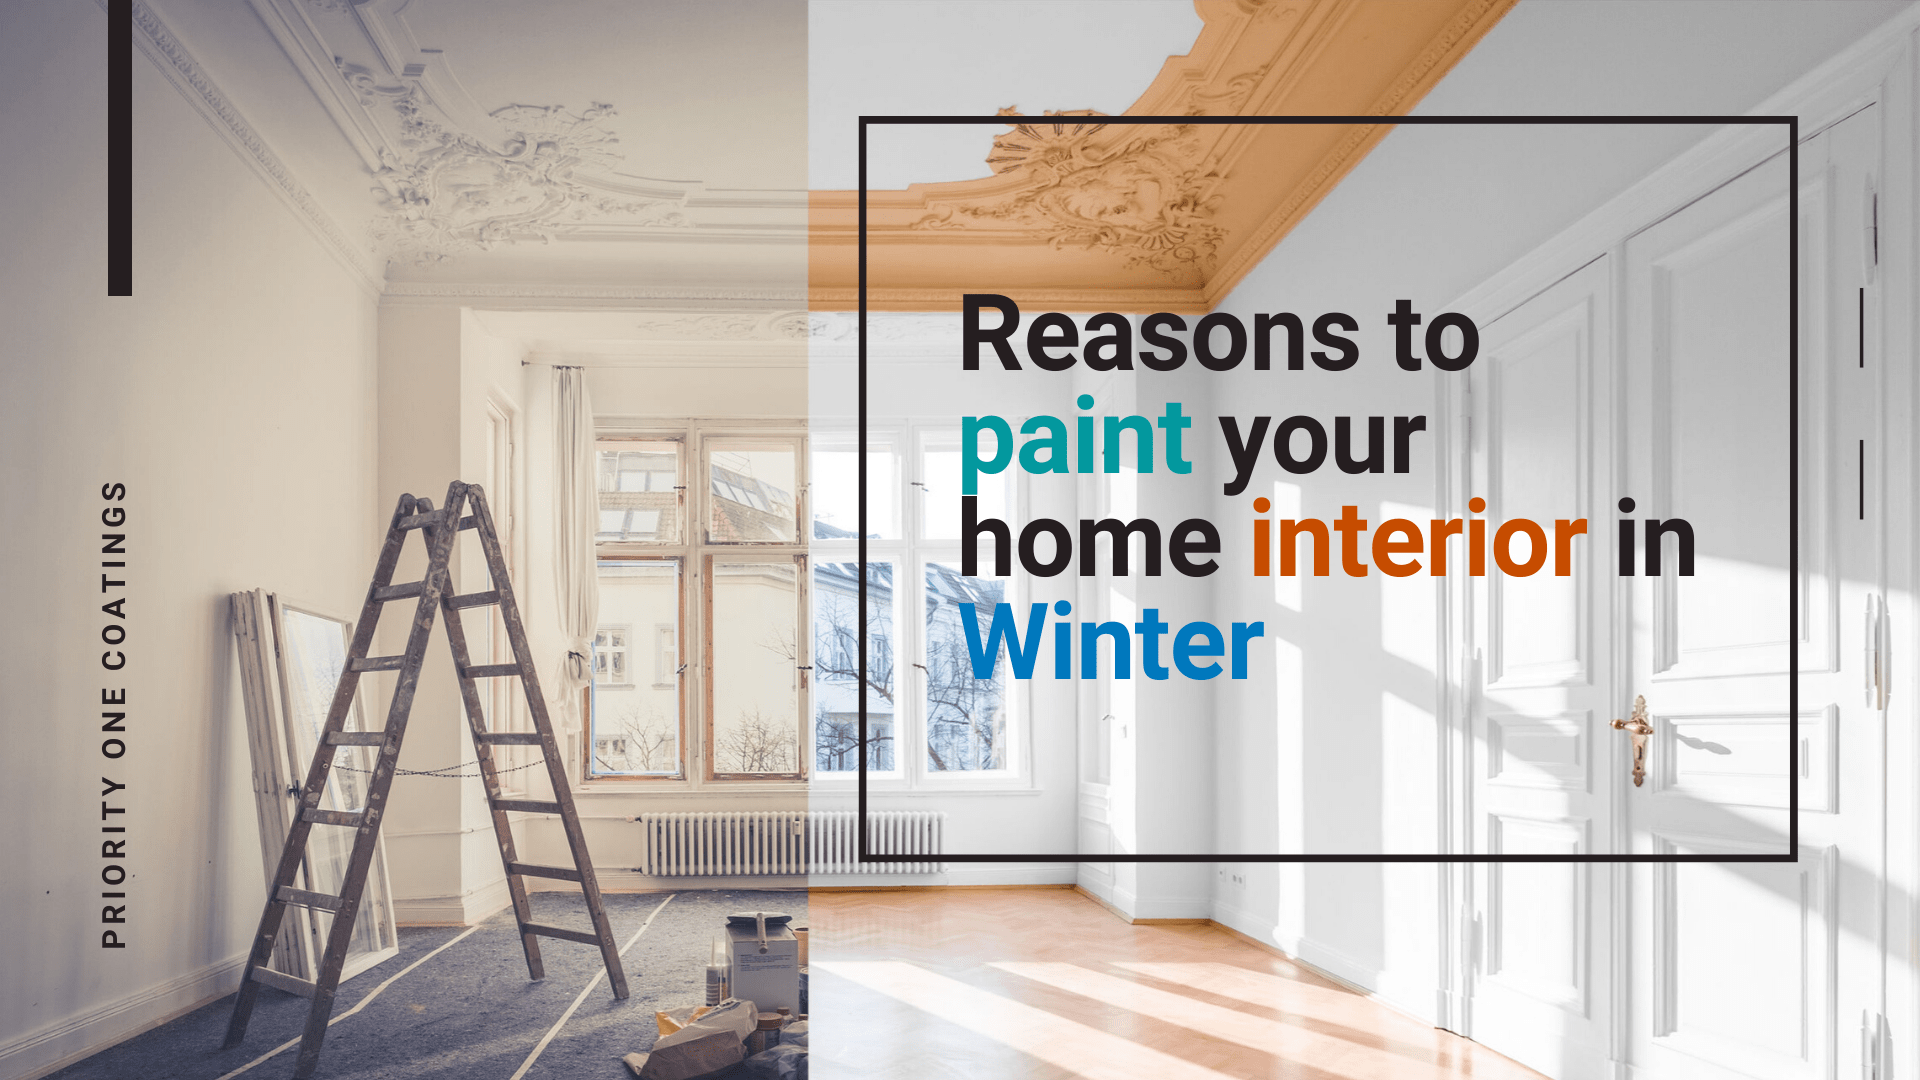 Reasons to paint your home interior in Winter